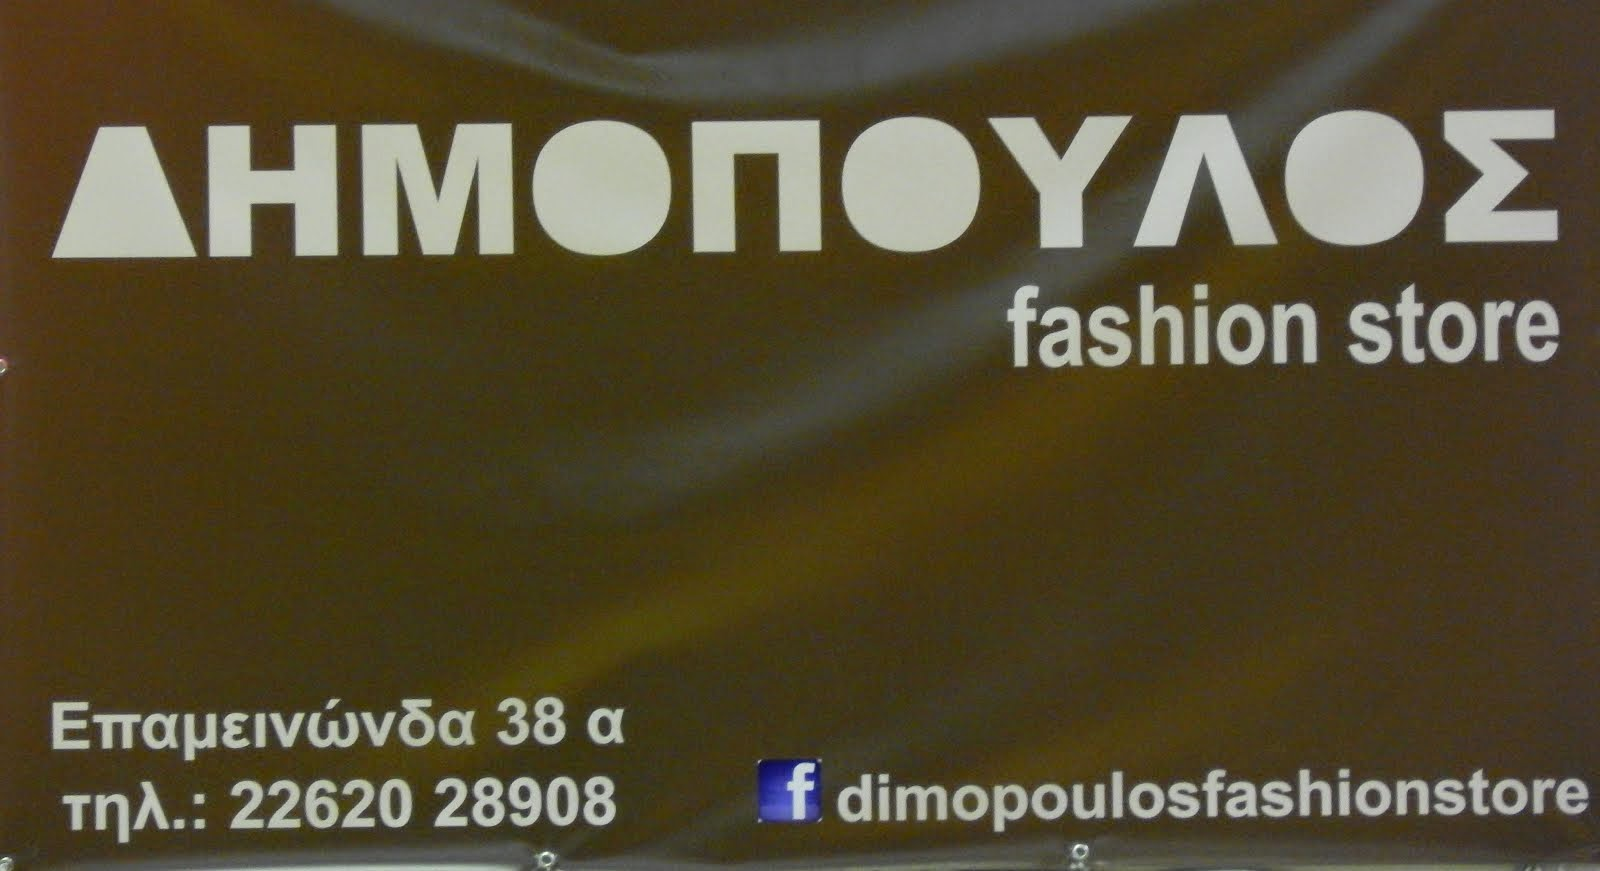 ΔΗΜΟΠΟΥΛΟΣ FASHION STORE